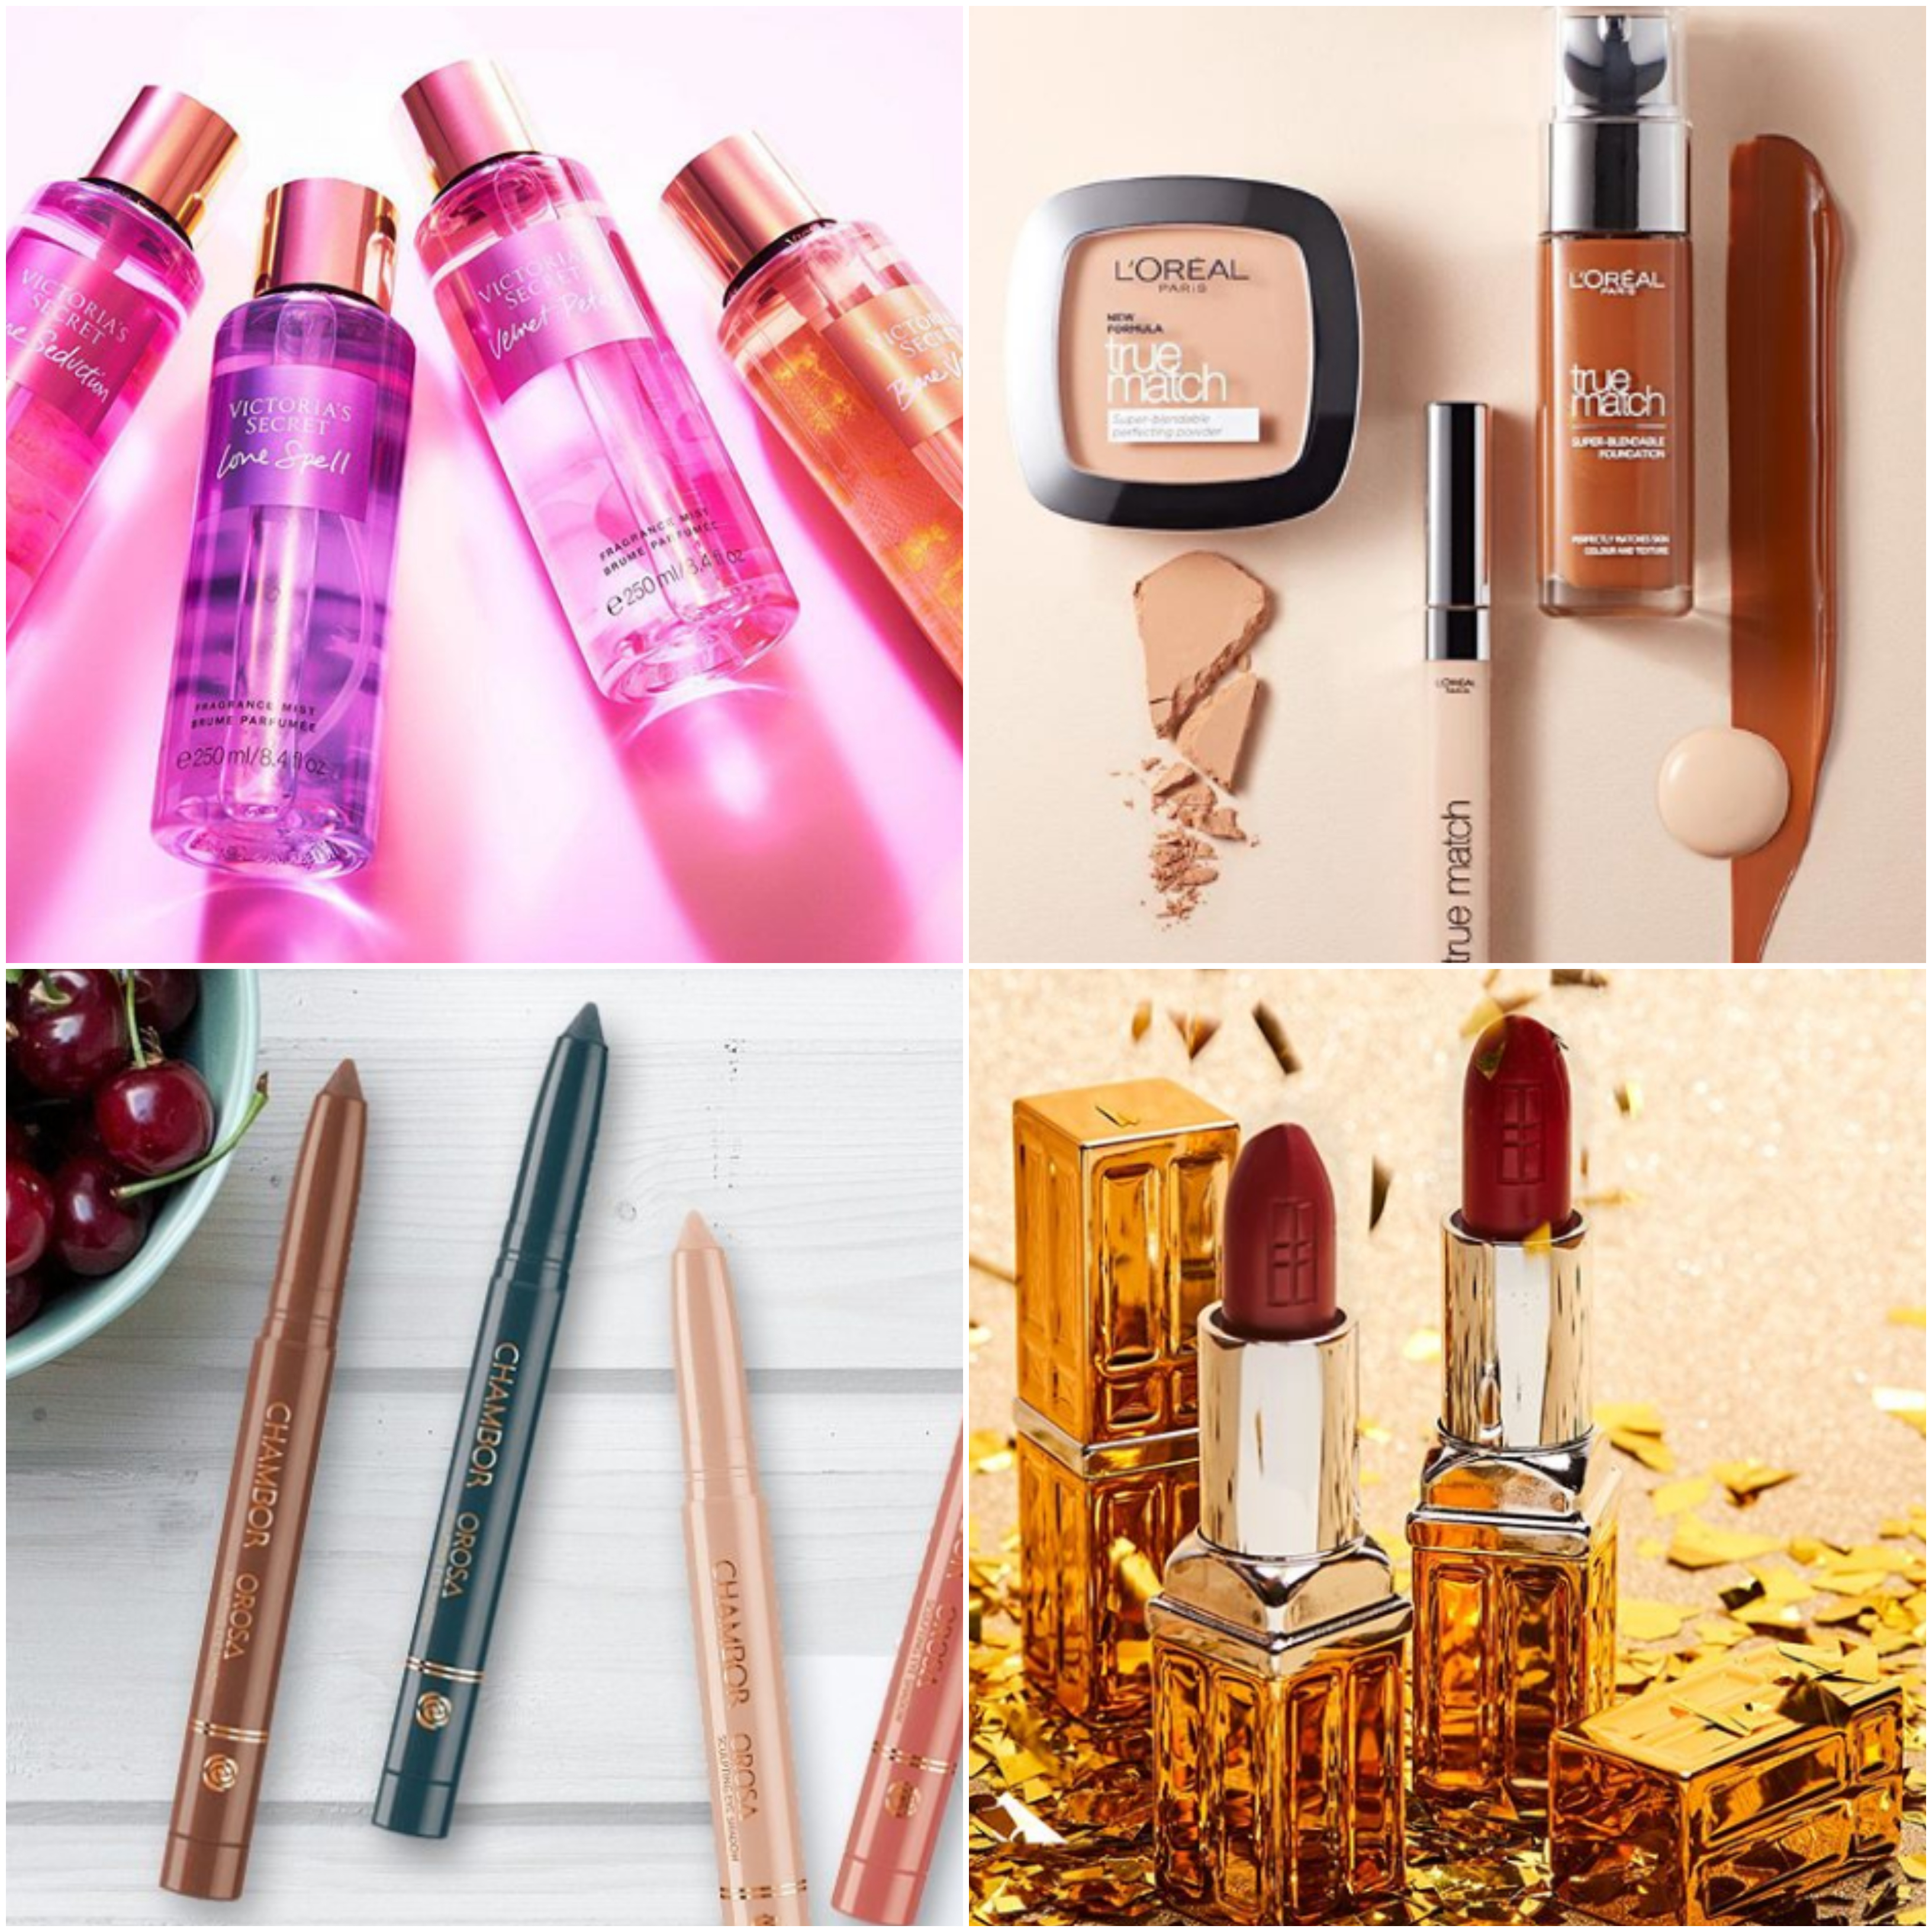 Ciceroni-beautystores-Ahmedabad-shoppingguide-lakme-AhmedabadOneMall-Victoria's Secret-Estee Lauder-Chambor-Nykaa- Iba Halal-Colorbar-Maybelline NewYork- L'Oréal Paris-Faces-Lotus-Biotique-The Perfume Shop-Bobbi Brown-Shoppers Stop-Westside-Lifestyle-Pantaloons-cosmeticstores-MYMY-beautyessentials